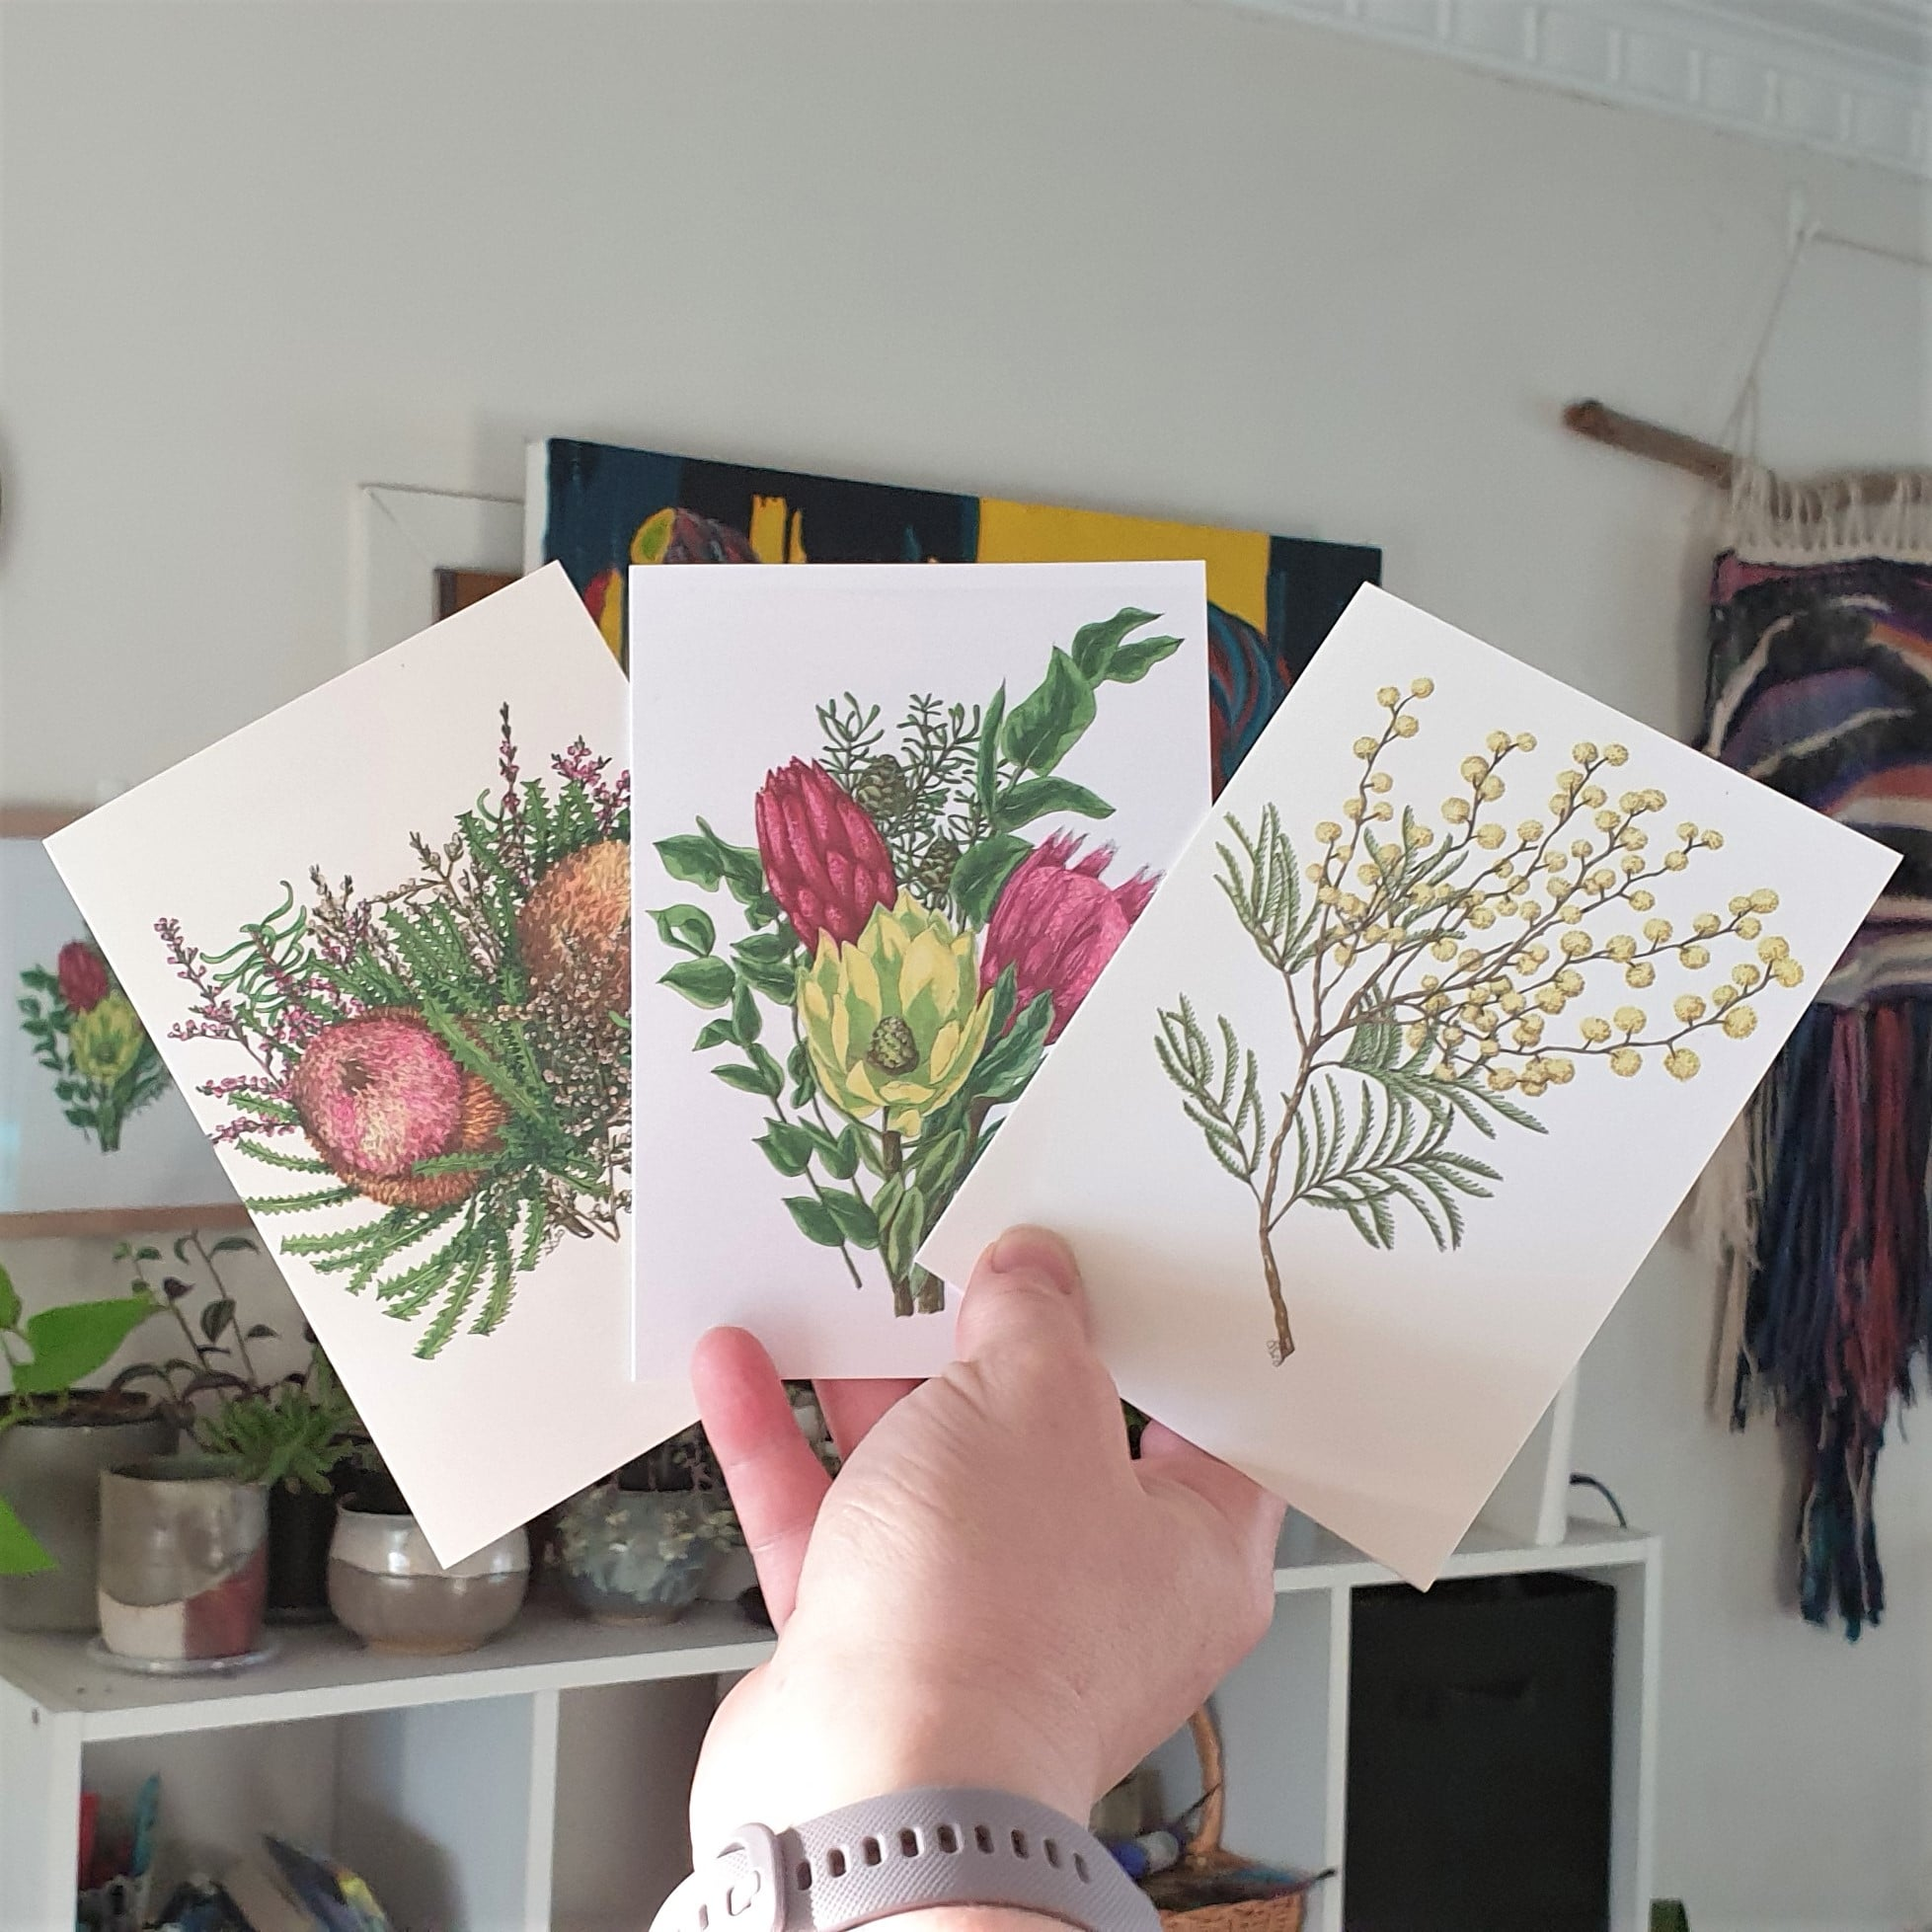 'Aussie Flowers 1' Three Pack Cards Greeting Cards Botanical Collection Sarah Sheldon Art By A Vibrant Nest